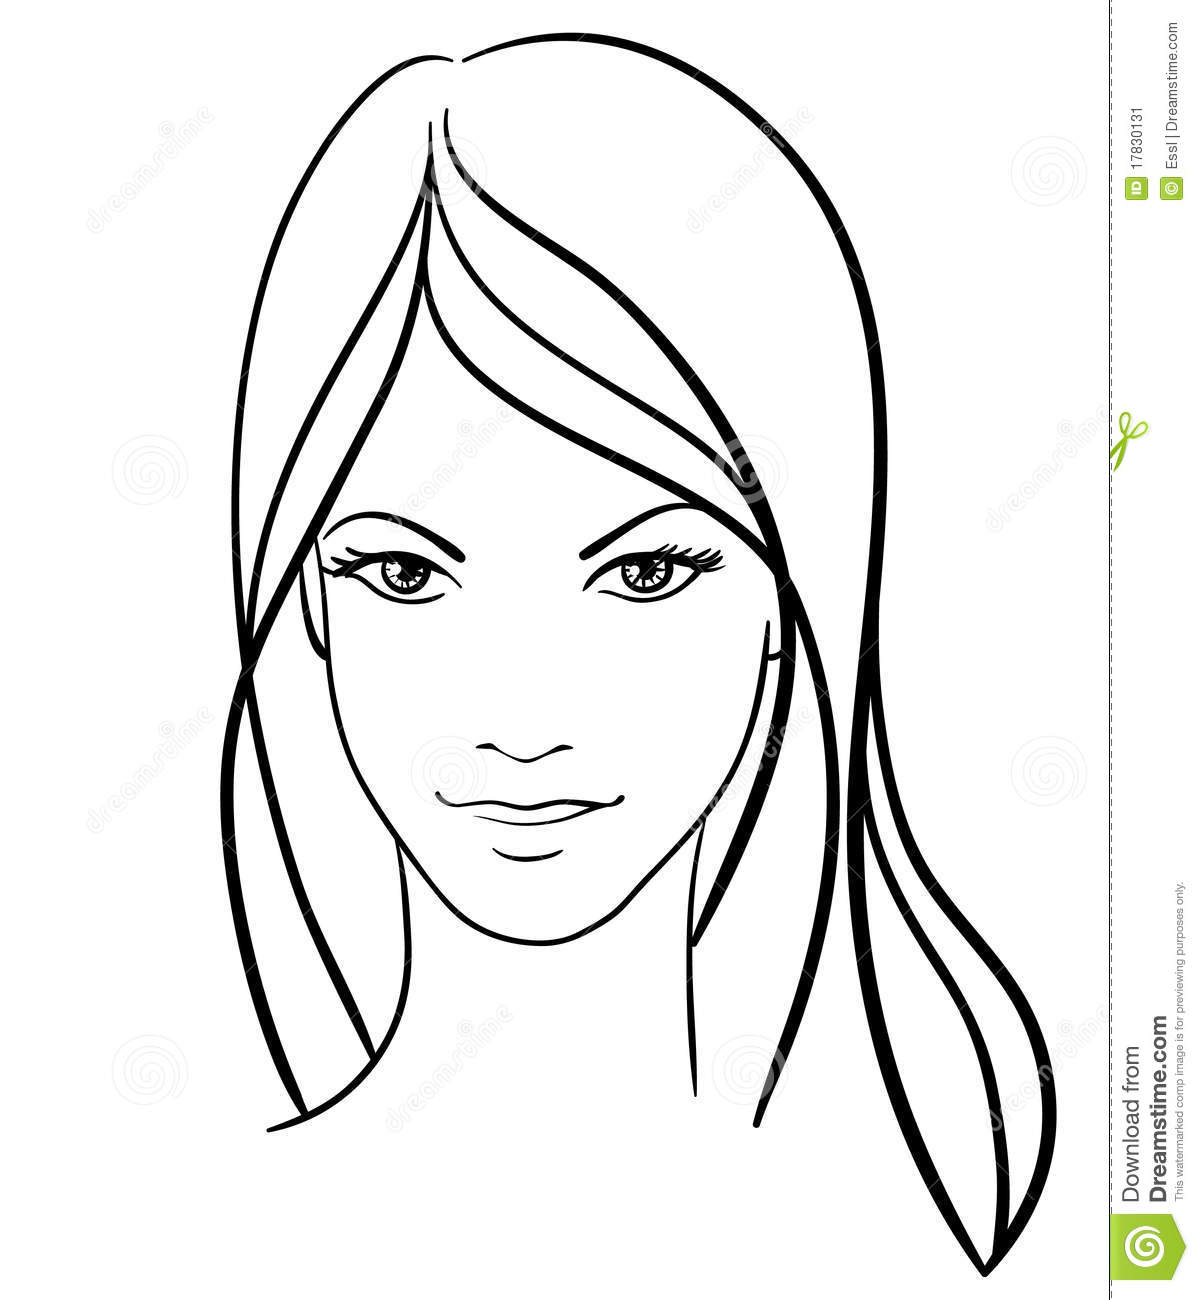 1199x1300 Girls Drawing Pic Simple Beauty Girl Face Icon Stencil Ideas